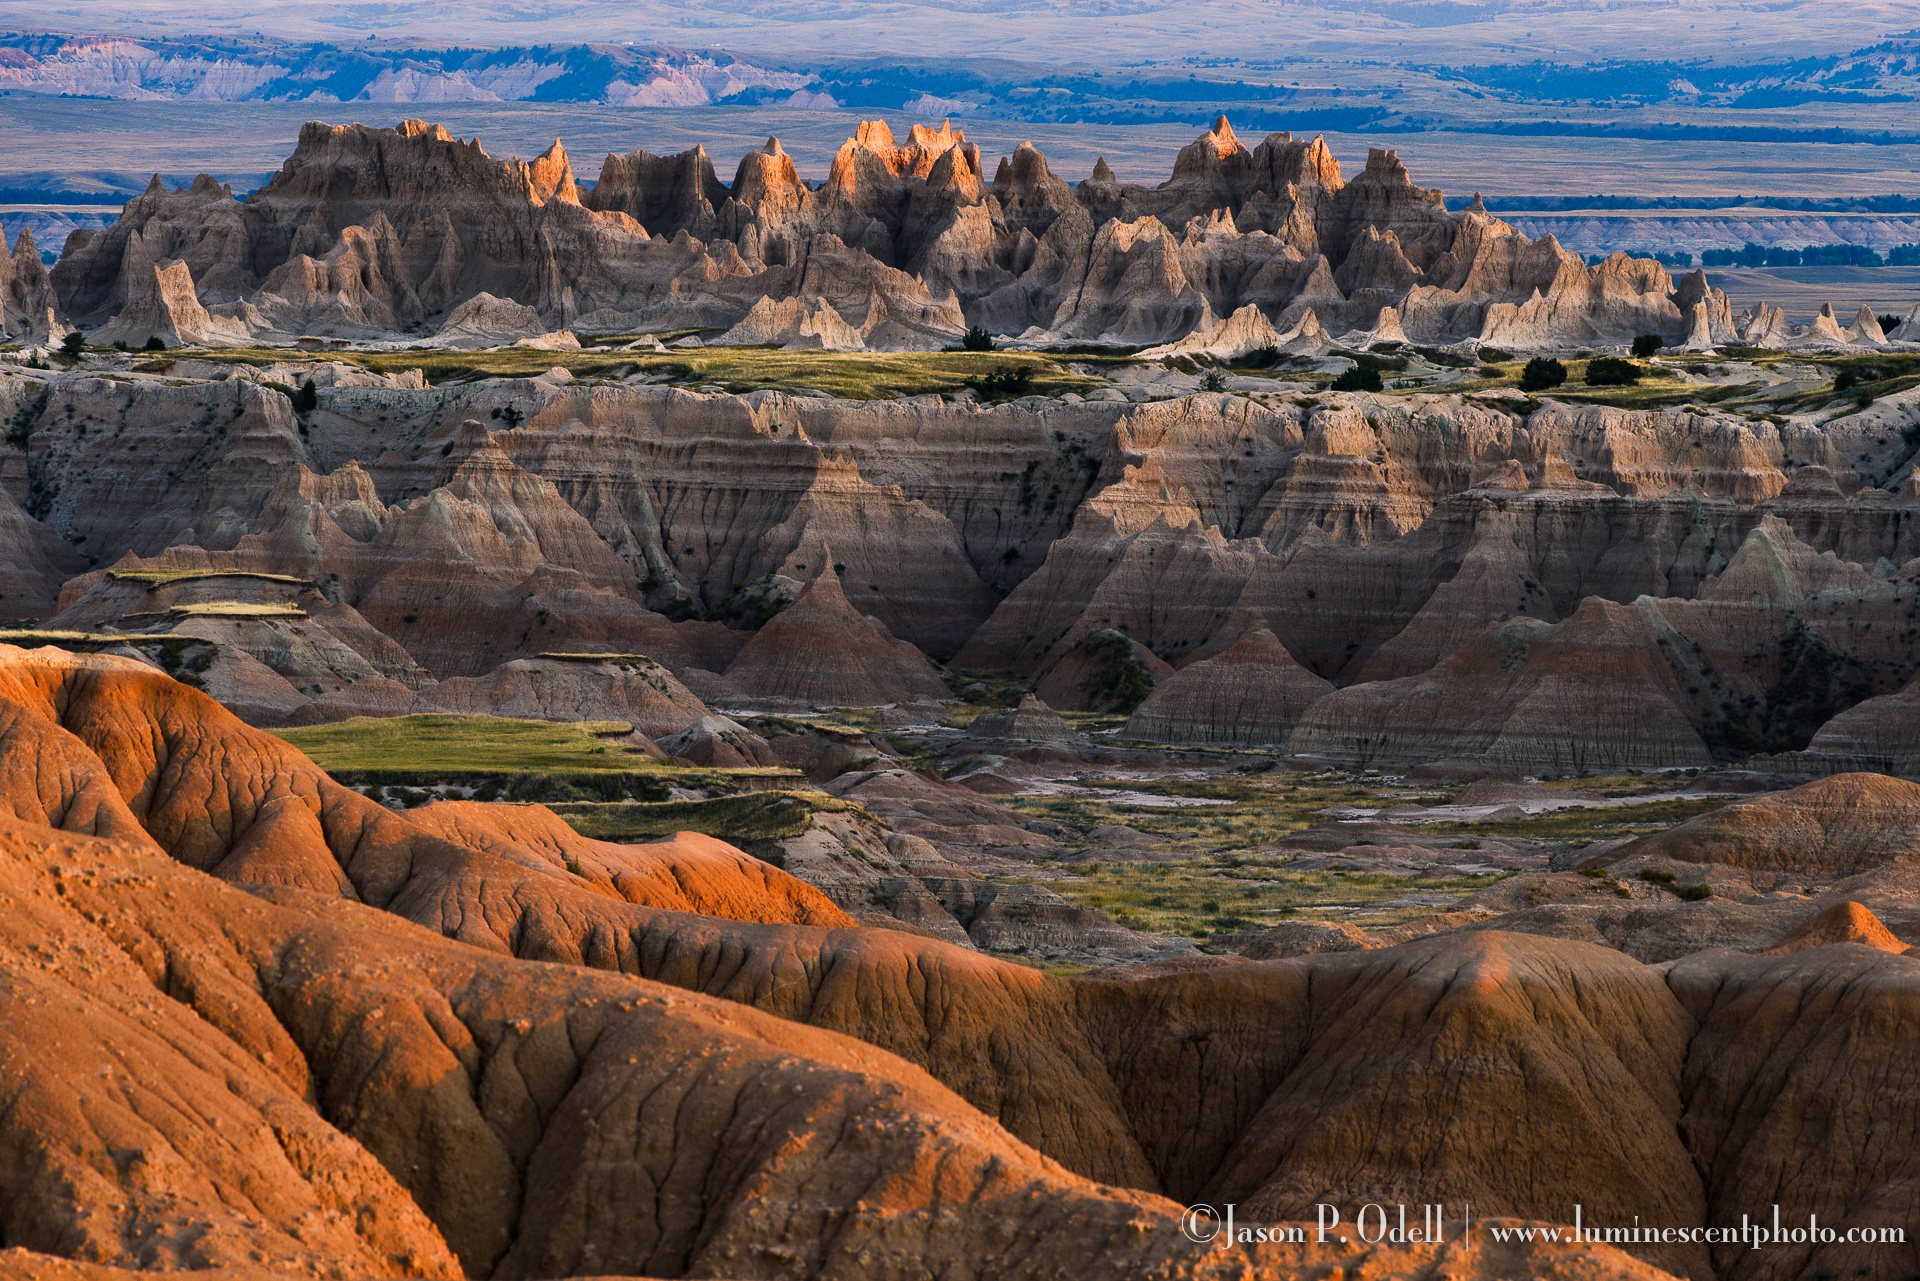 Badlands Photo Safari